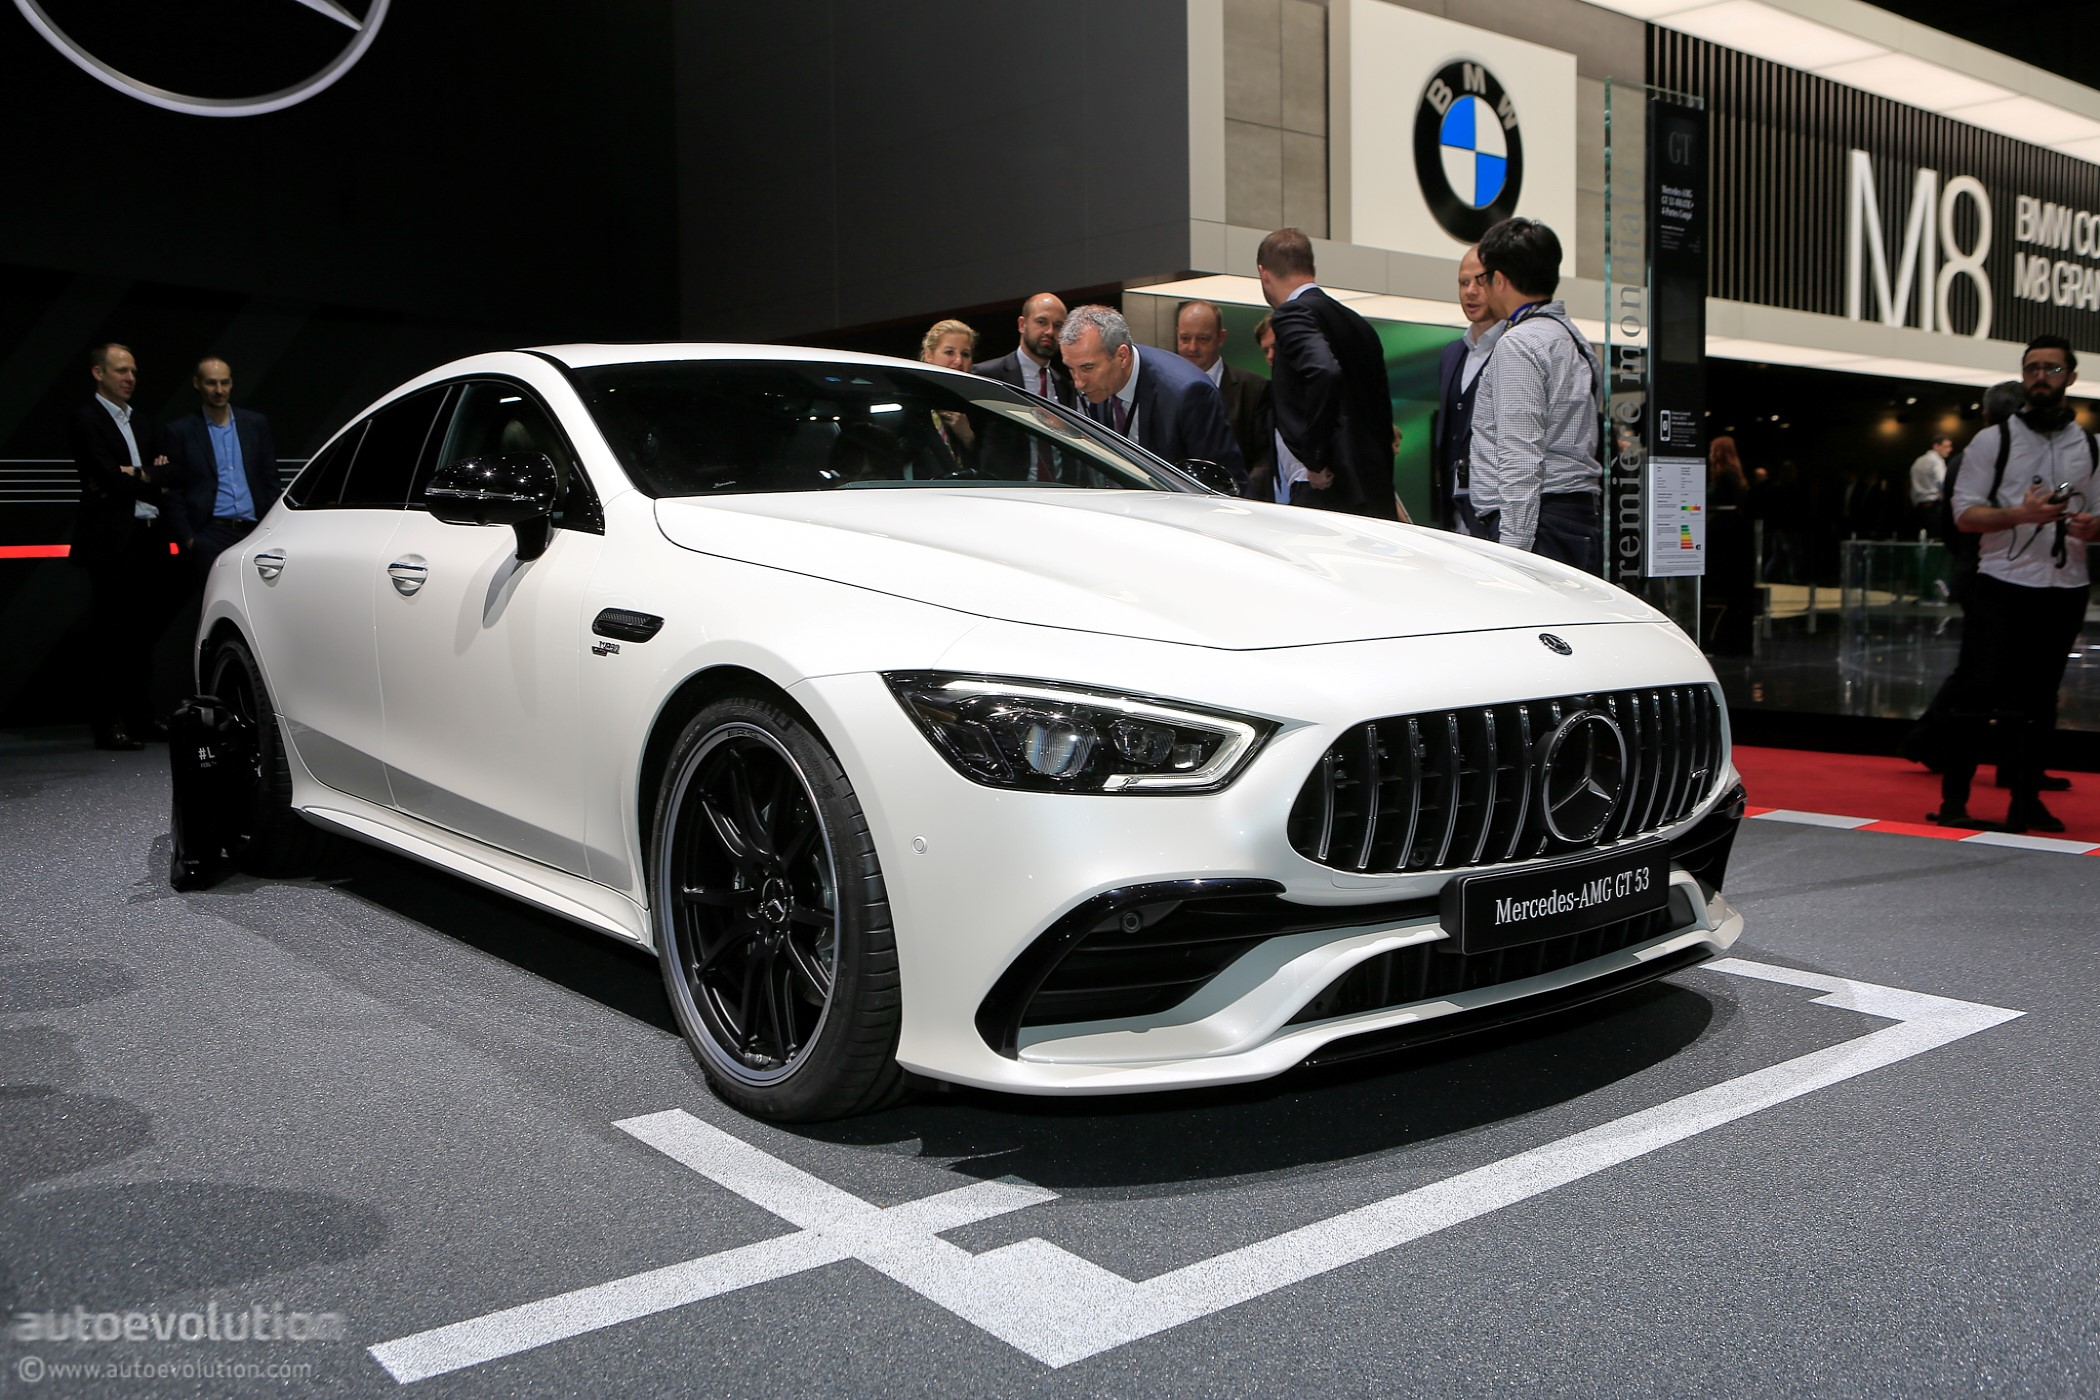 2019 mercedes amg gt 4 door coupe x290 shows liftback silhouette in geneva autoevolution. Black Bedroom Furniture Sets. Home Design Ideas